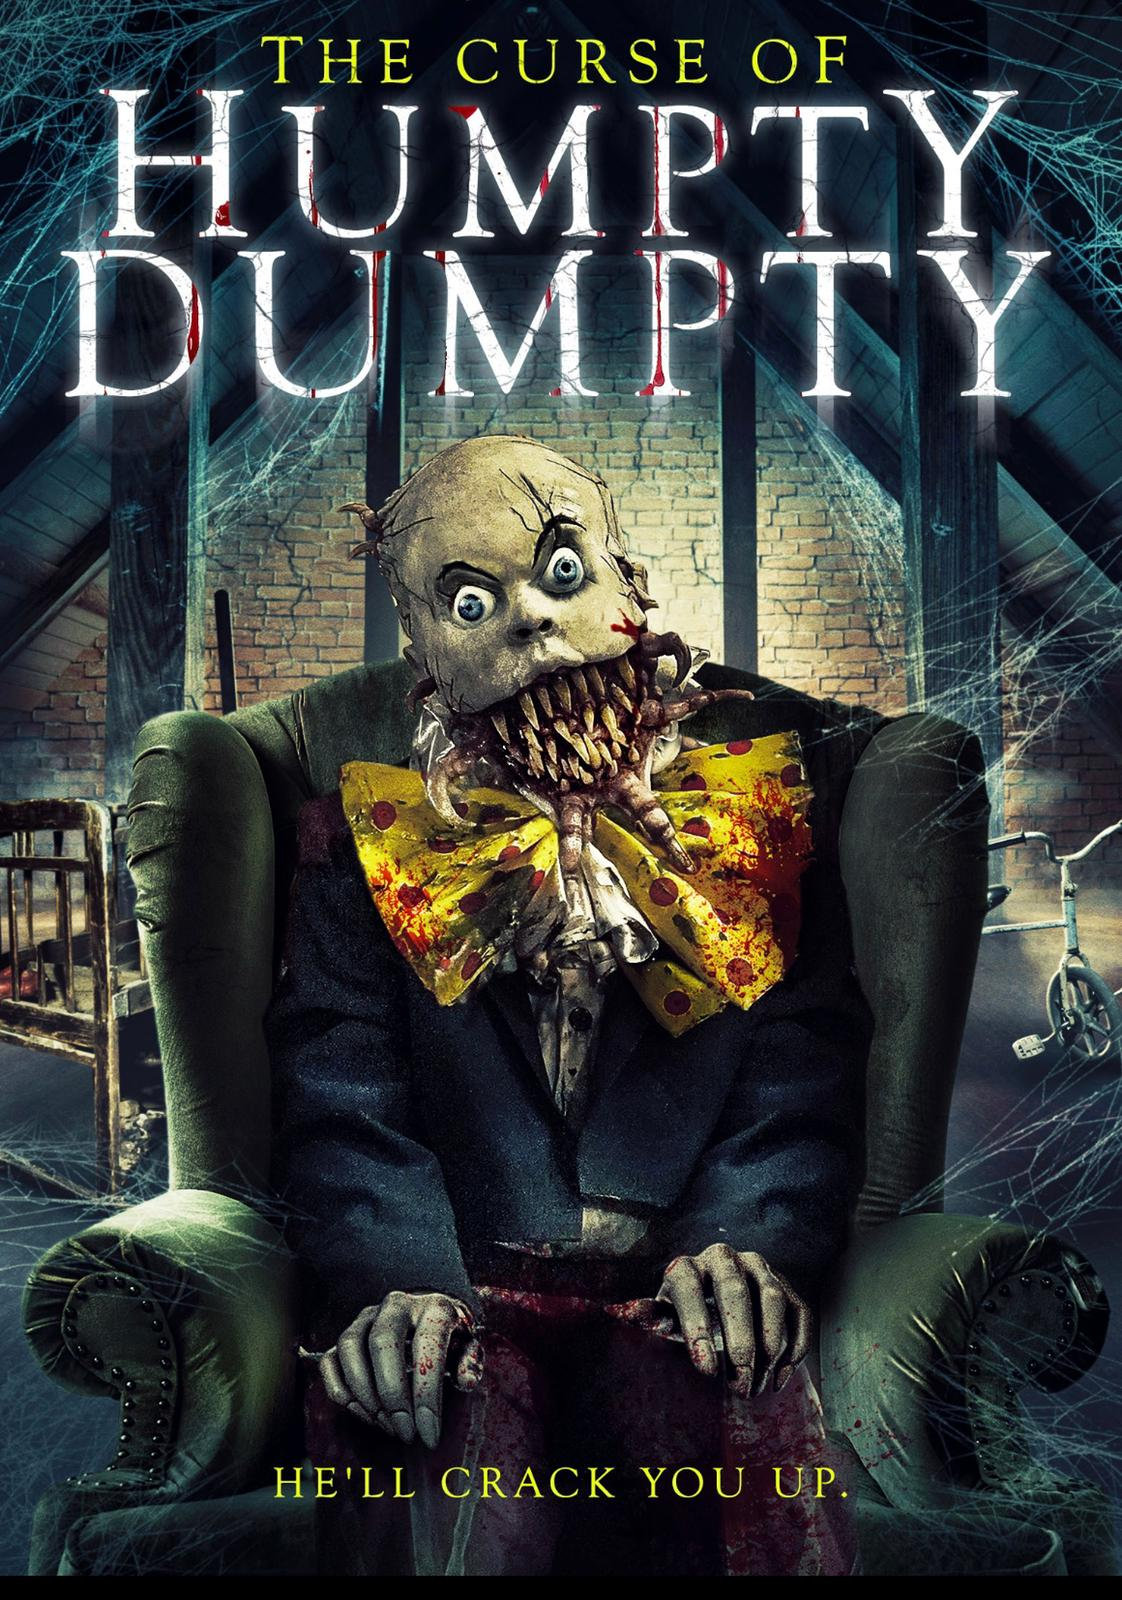 The Curse of Humpty Dumpty (2021) Hindi (Voice Over) Dubbed+ English [Dual Audio] WebRip 720p [1XBET]